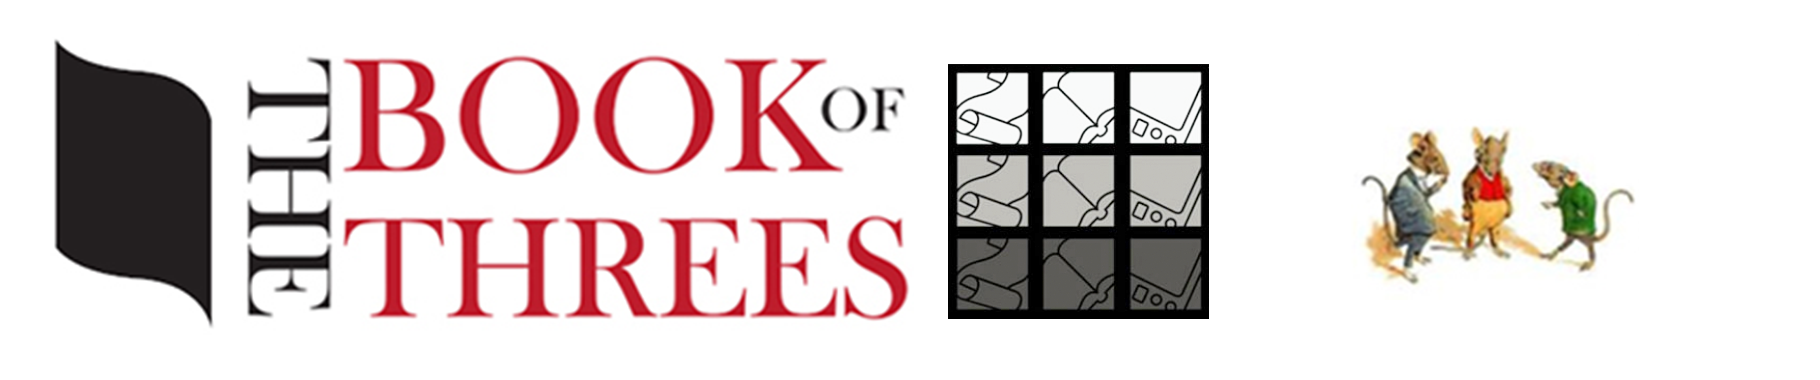 Book of Threes Banner